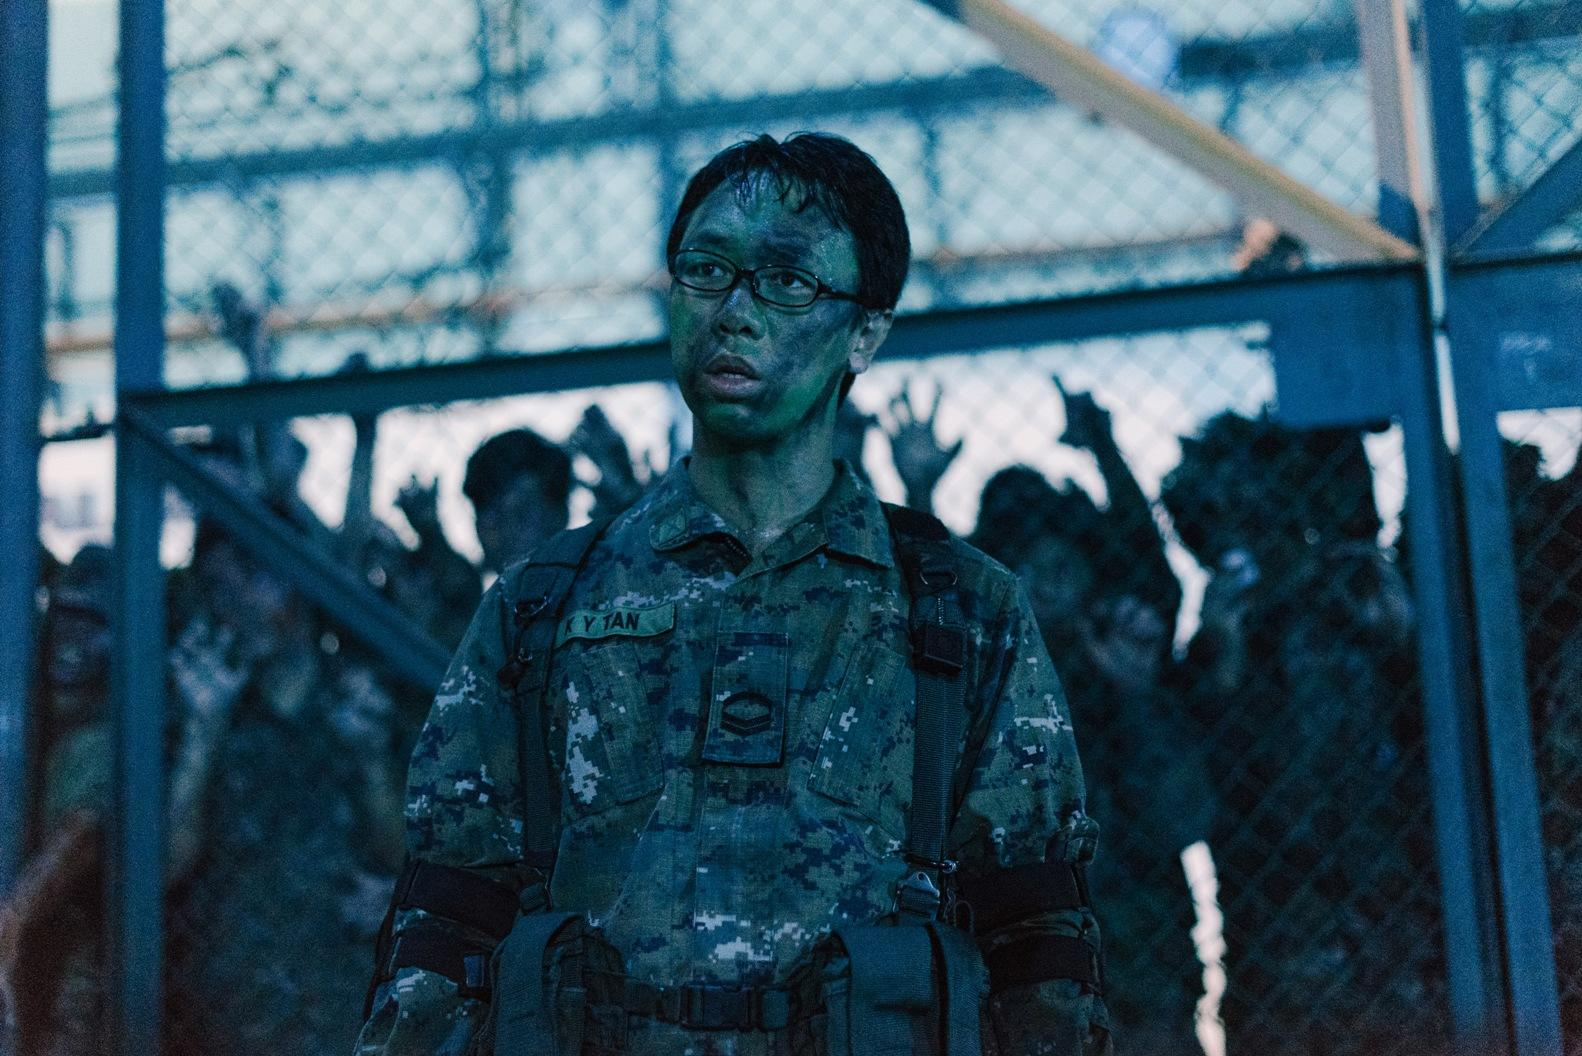 Singapore's first zombie film 'Zombiepura' hits screens in October